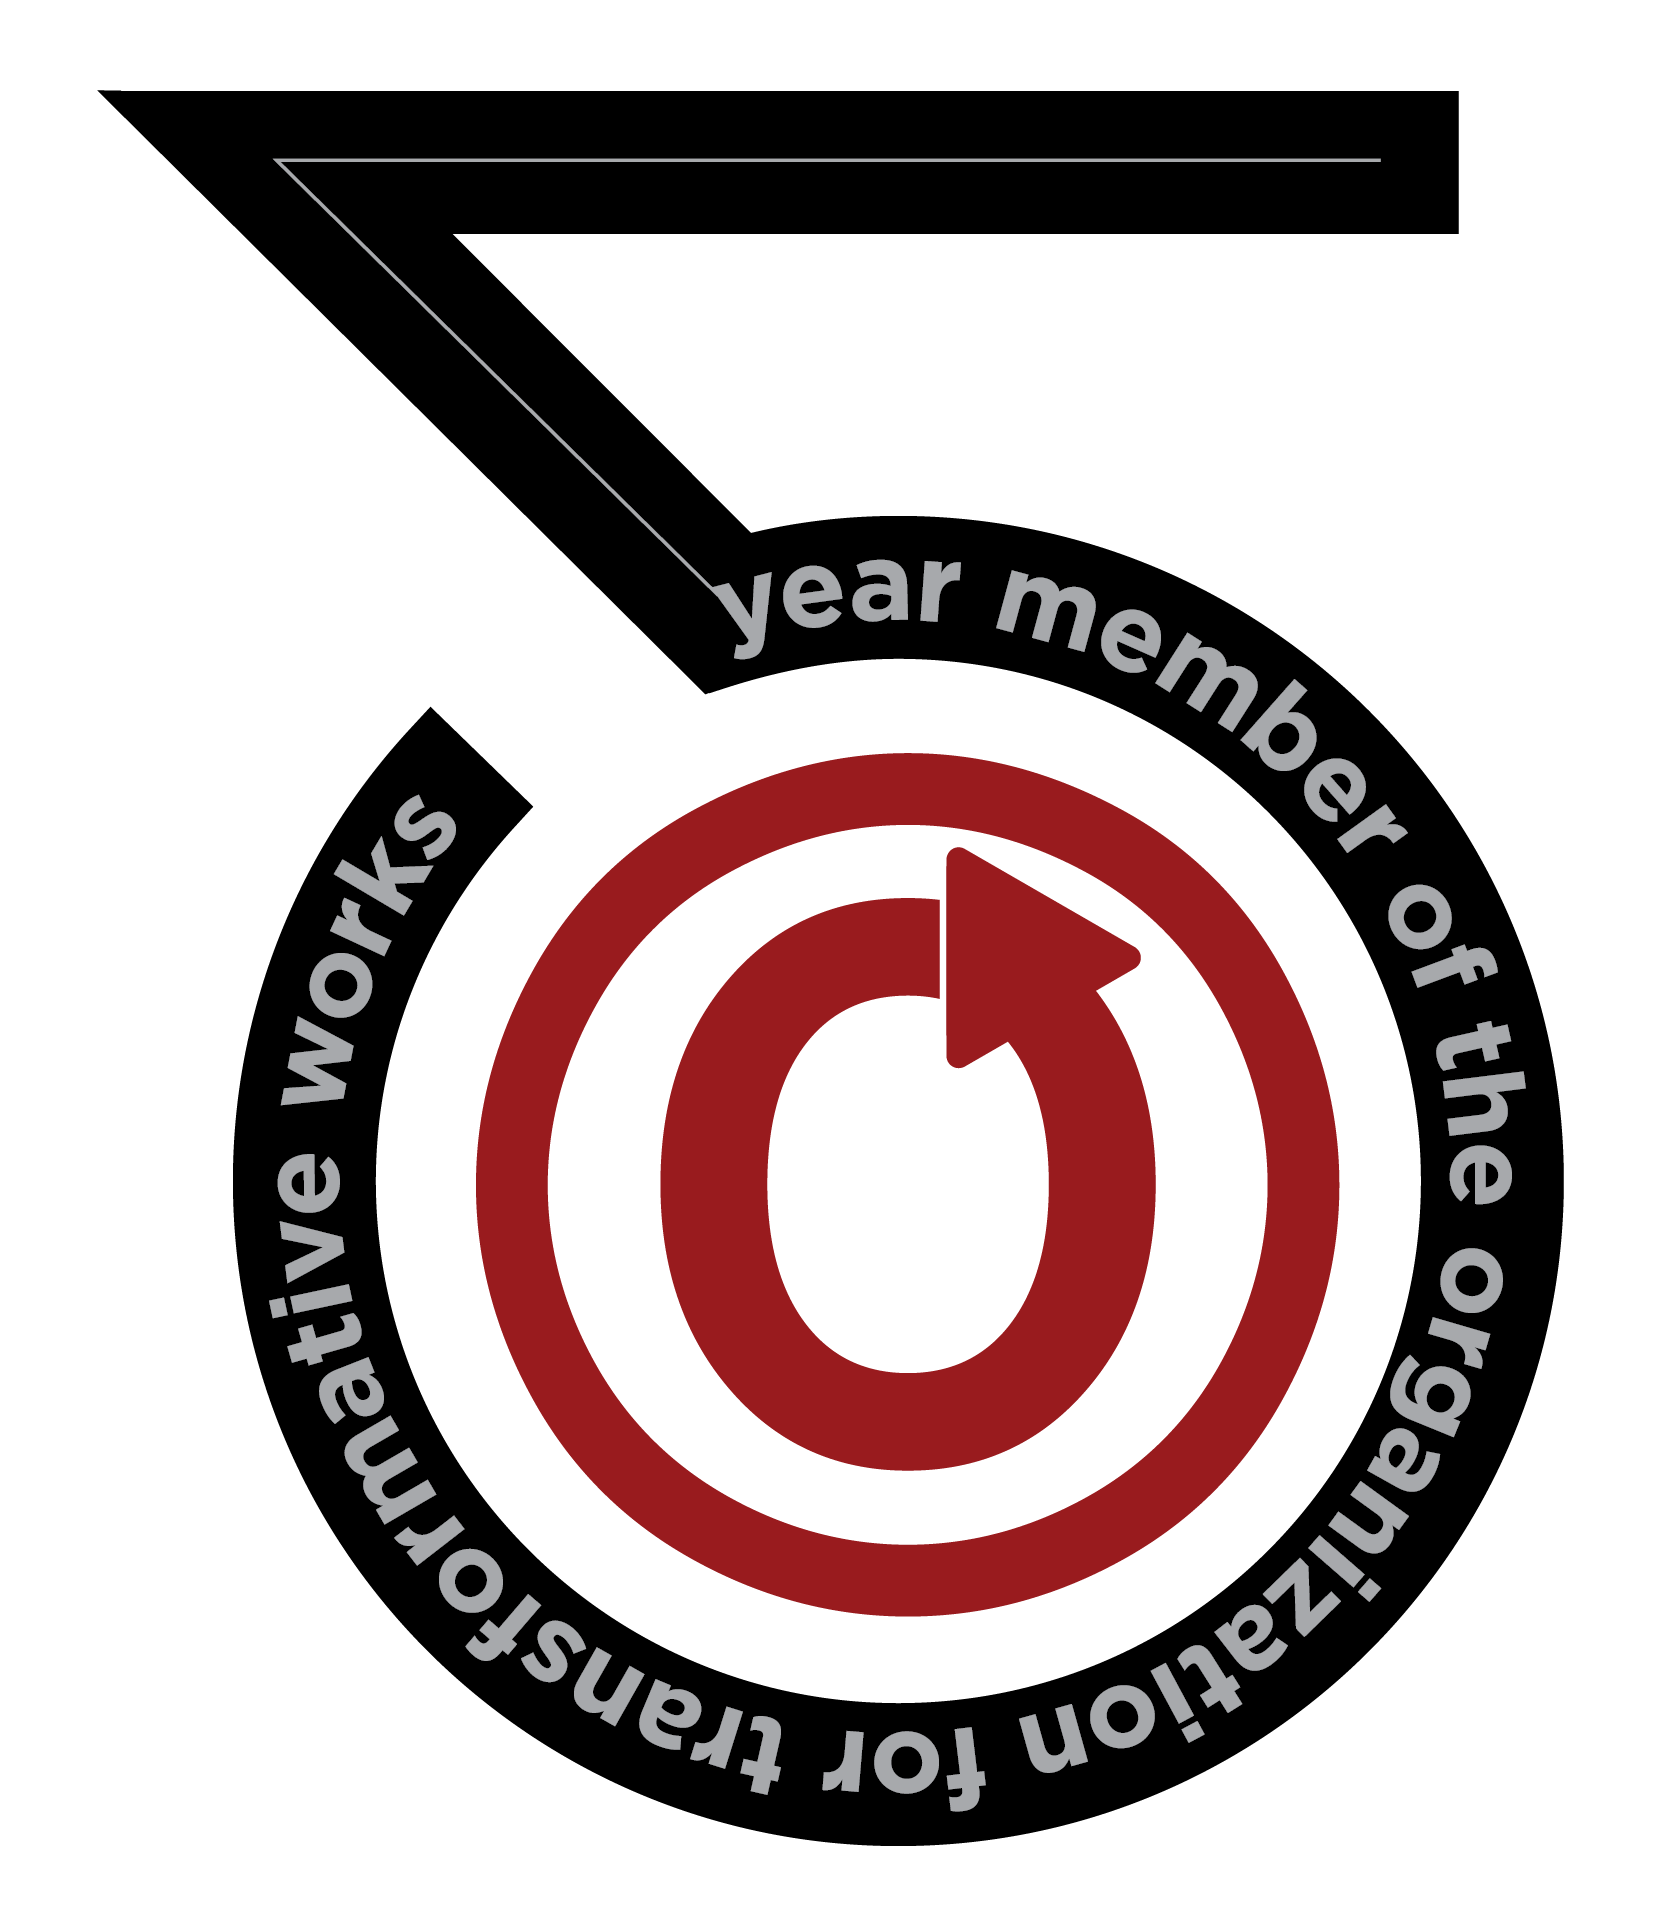 "Klistermærke med inskriptionen ""5-year member of the Organization for Transformative Works"" og OTW-logoet i midten."